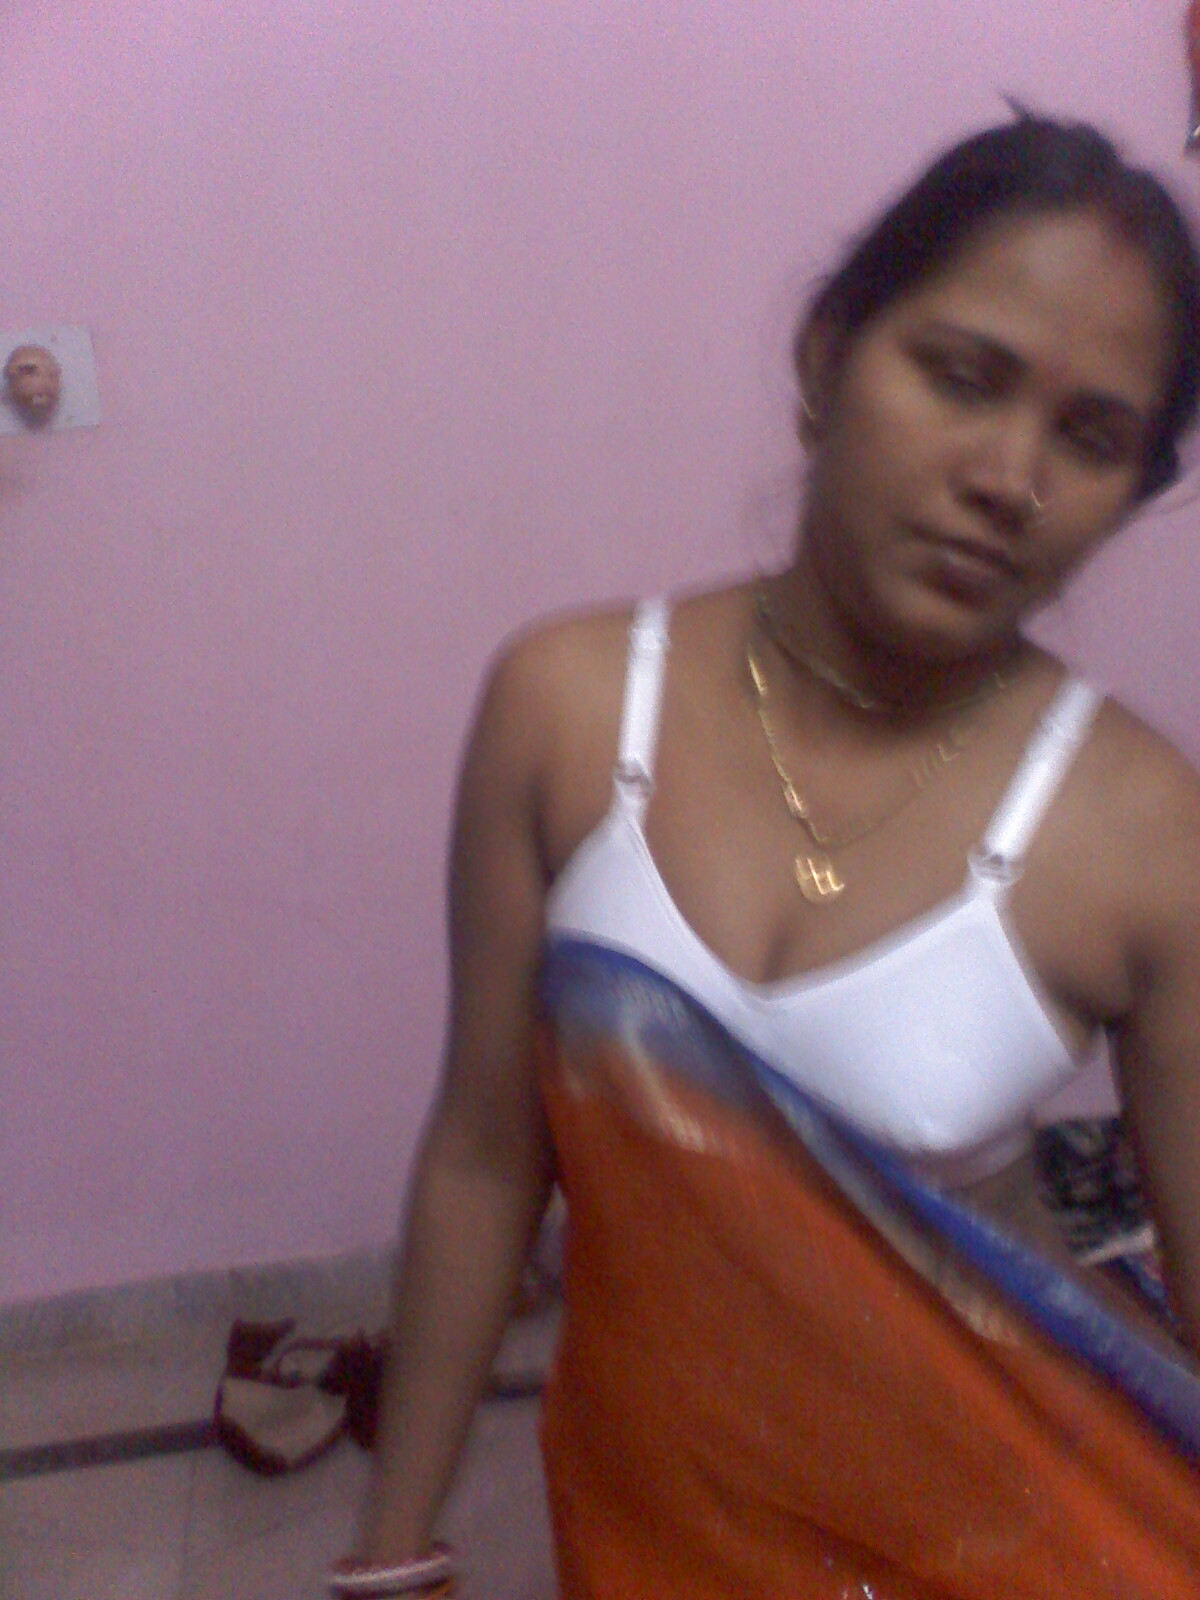 Desi indian bhabhi removing saree consider, that